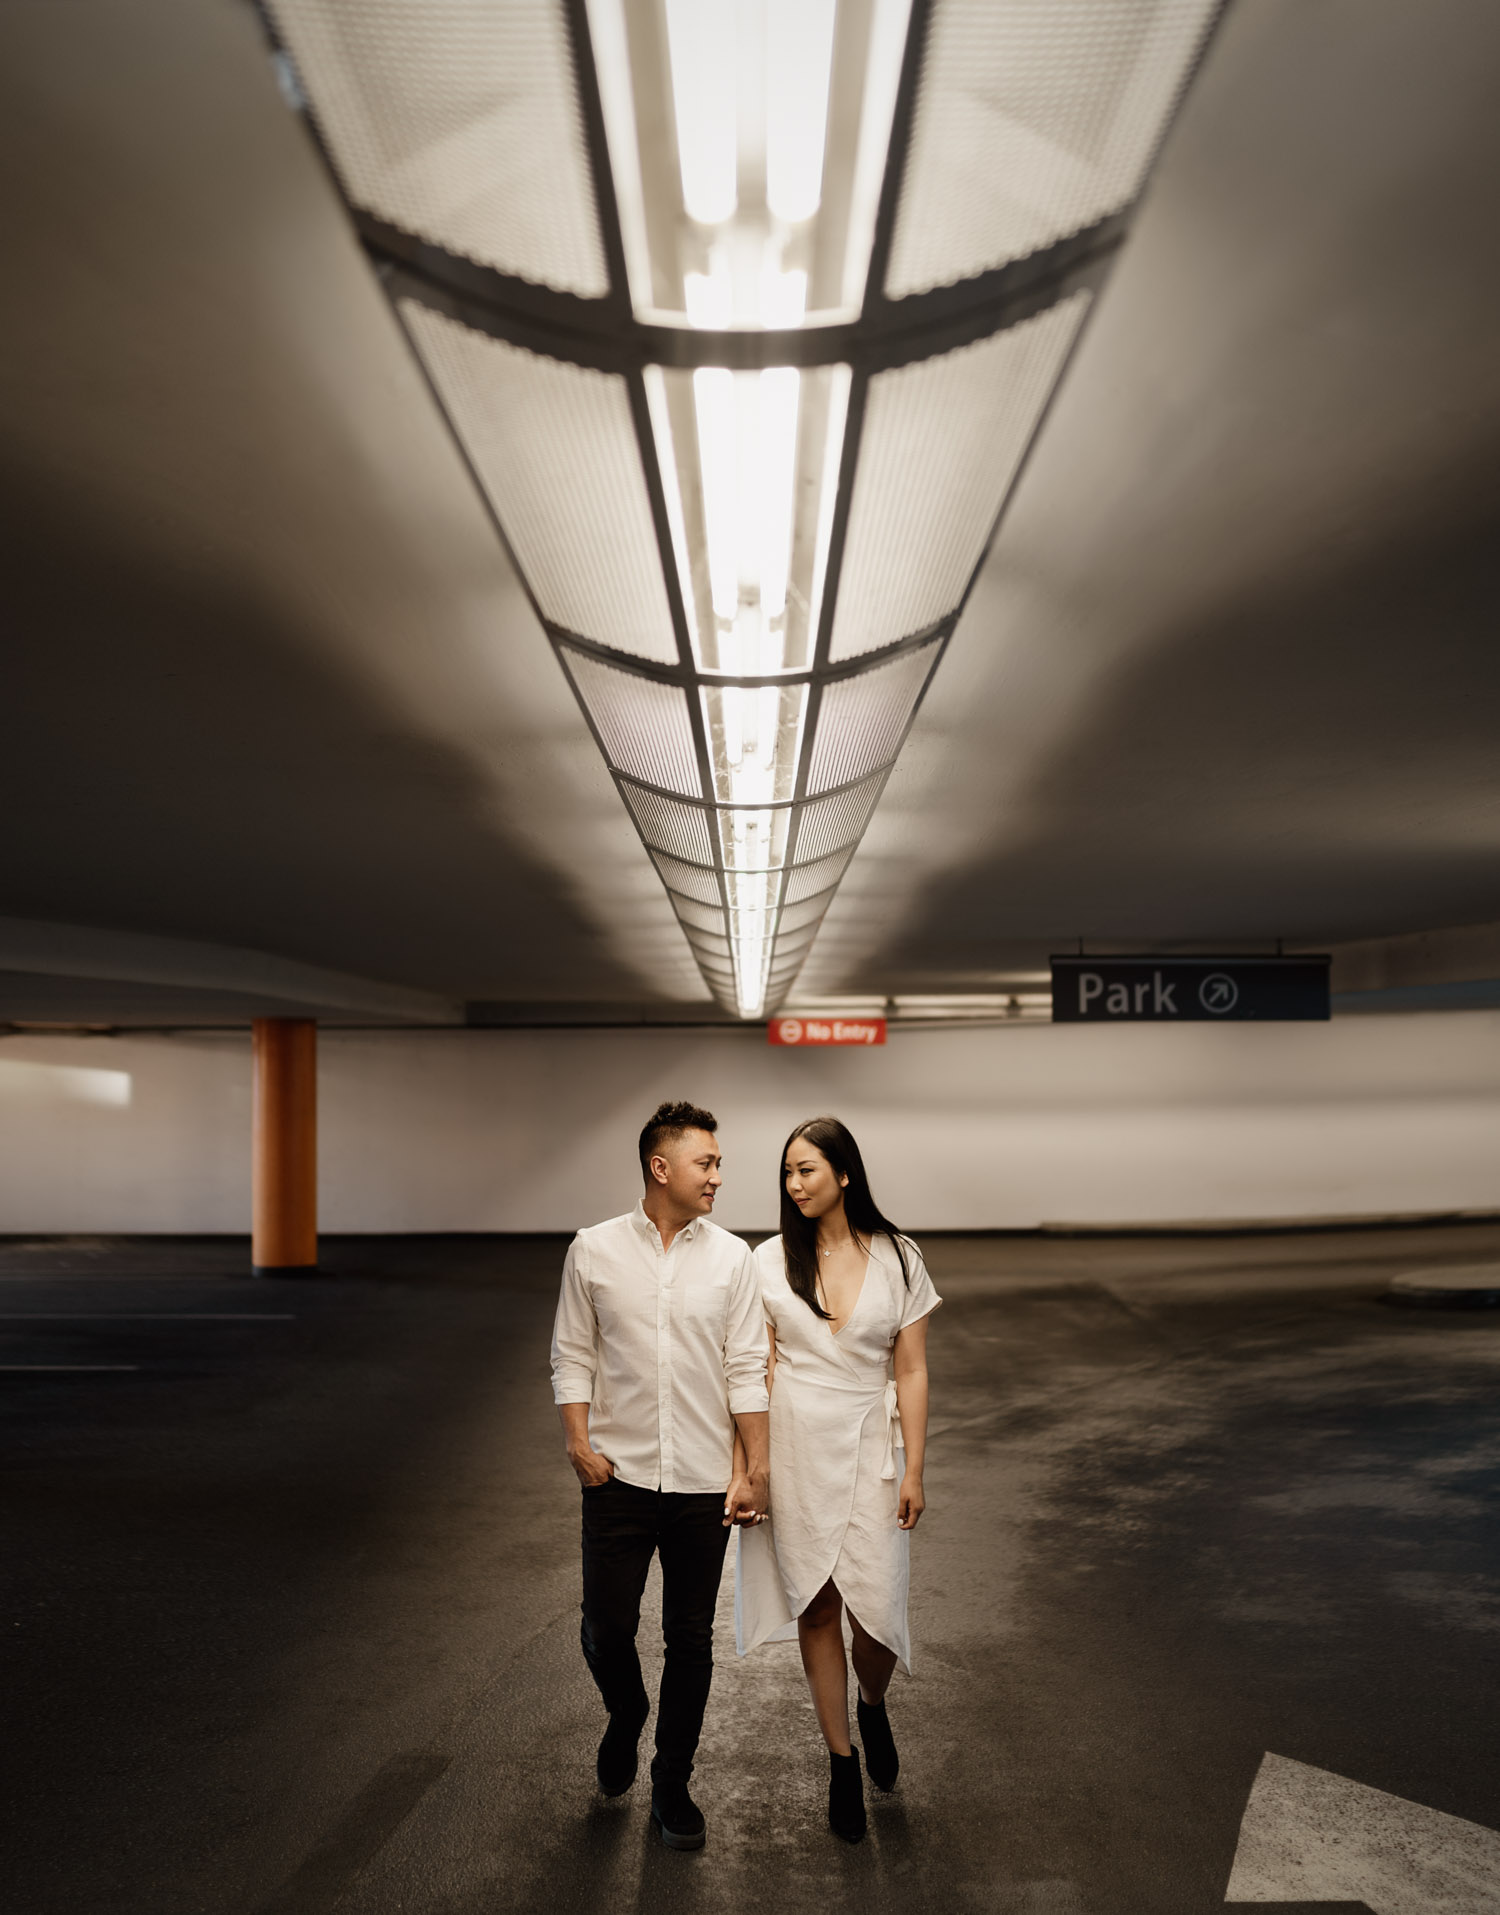 gastown parkade engagement photography during golden hour in the summer located in vancouver bc canada